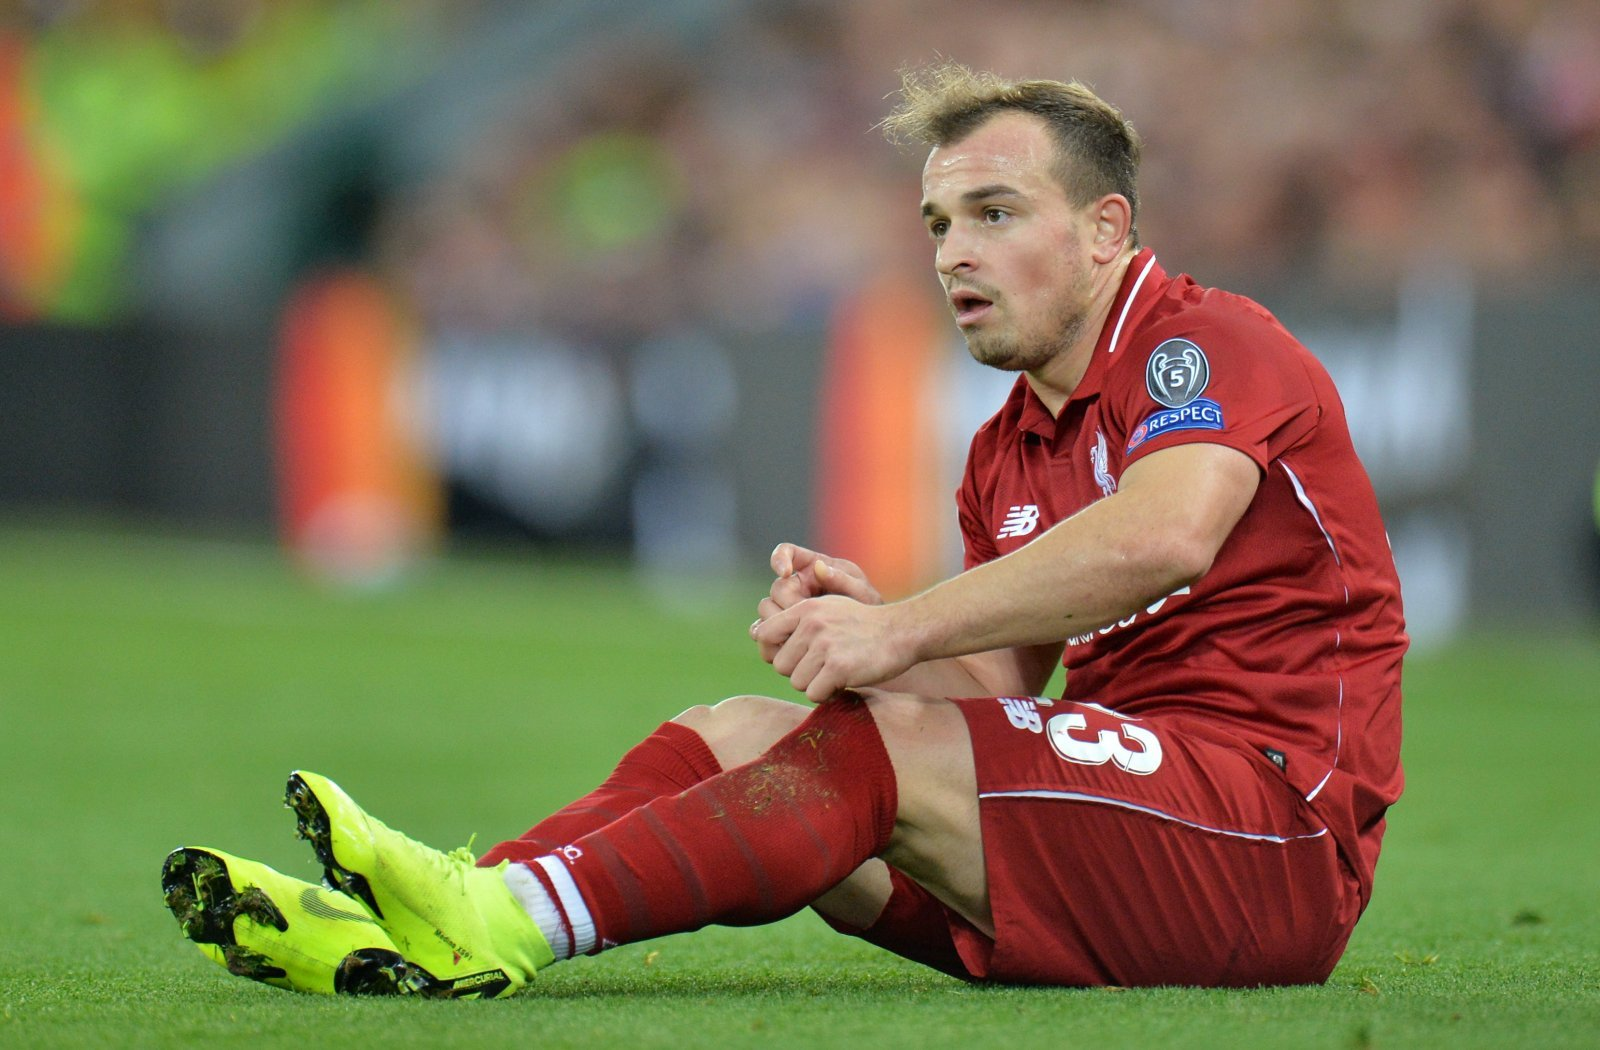 Liverpool's Xherdan Shaqiri will not rule out move to America or China in the future